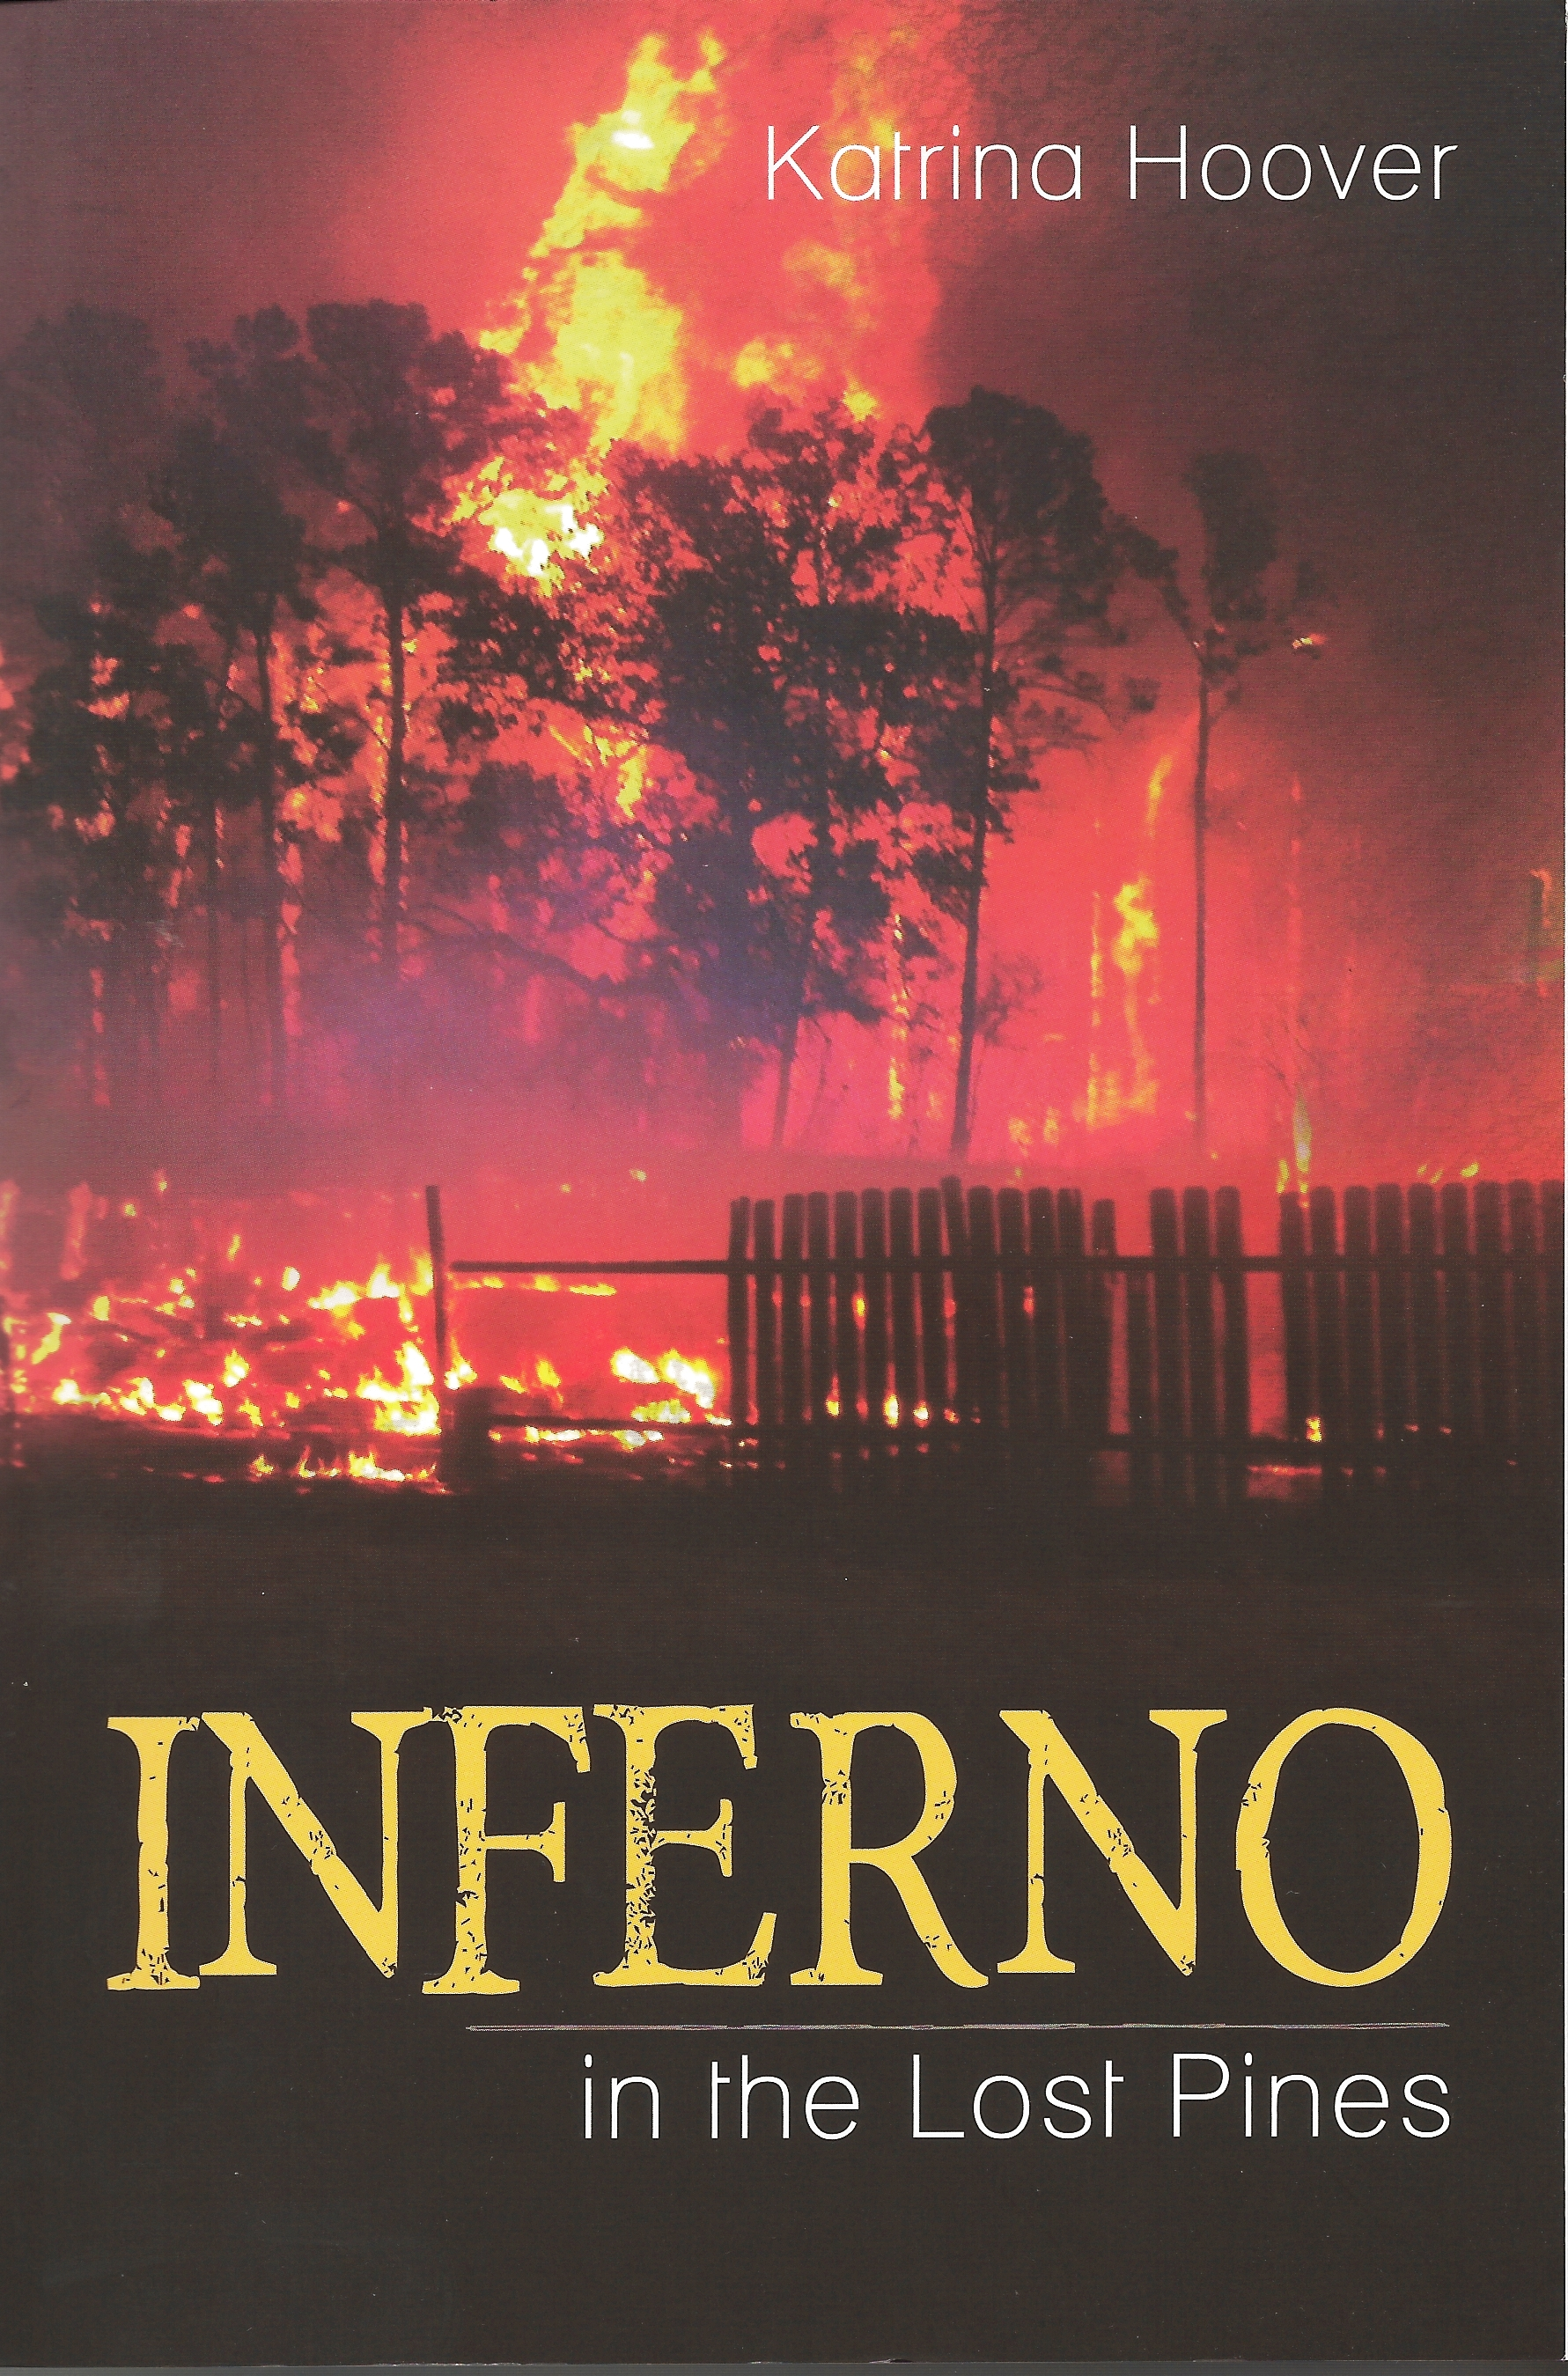 INFERNO IN THE LOST PINES Katrina Hoover